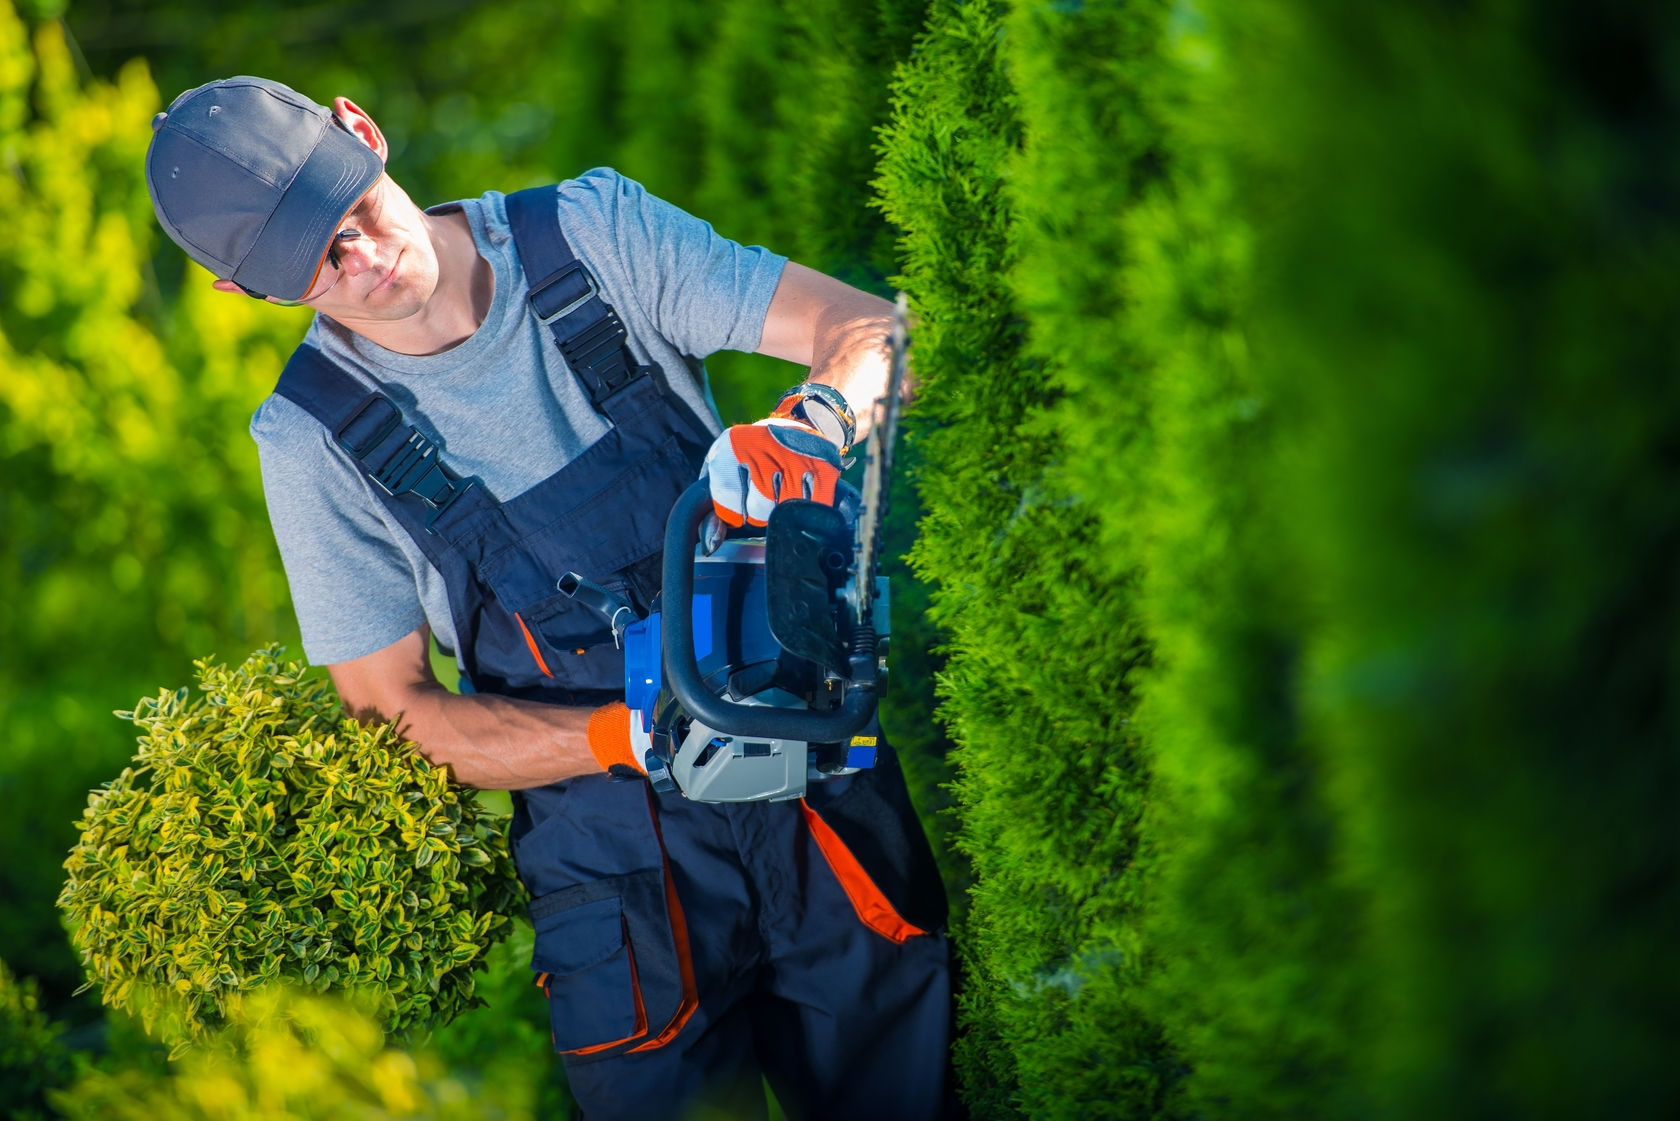 Why You Should Let Professionals Touch Your Yard